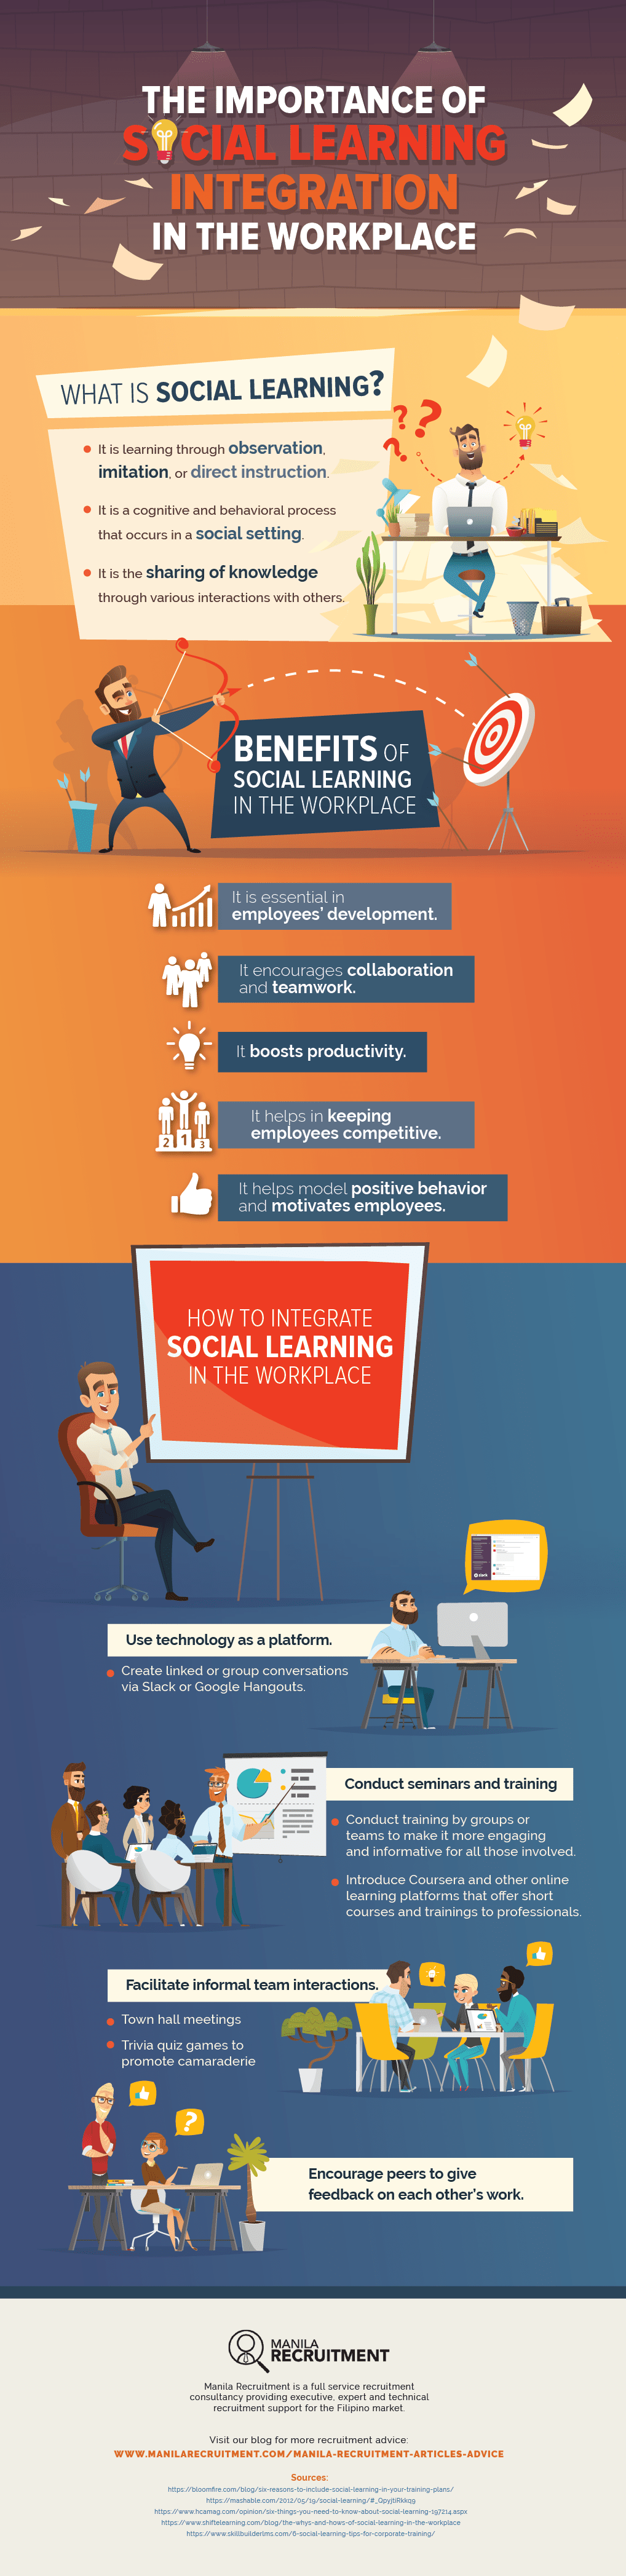 INFOGRAPHIC_The-Importance-of-Social-Learning-Integration-in-the-Workplace